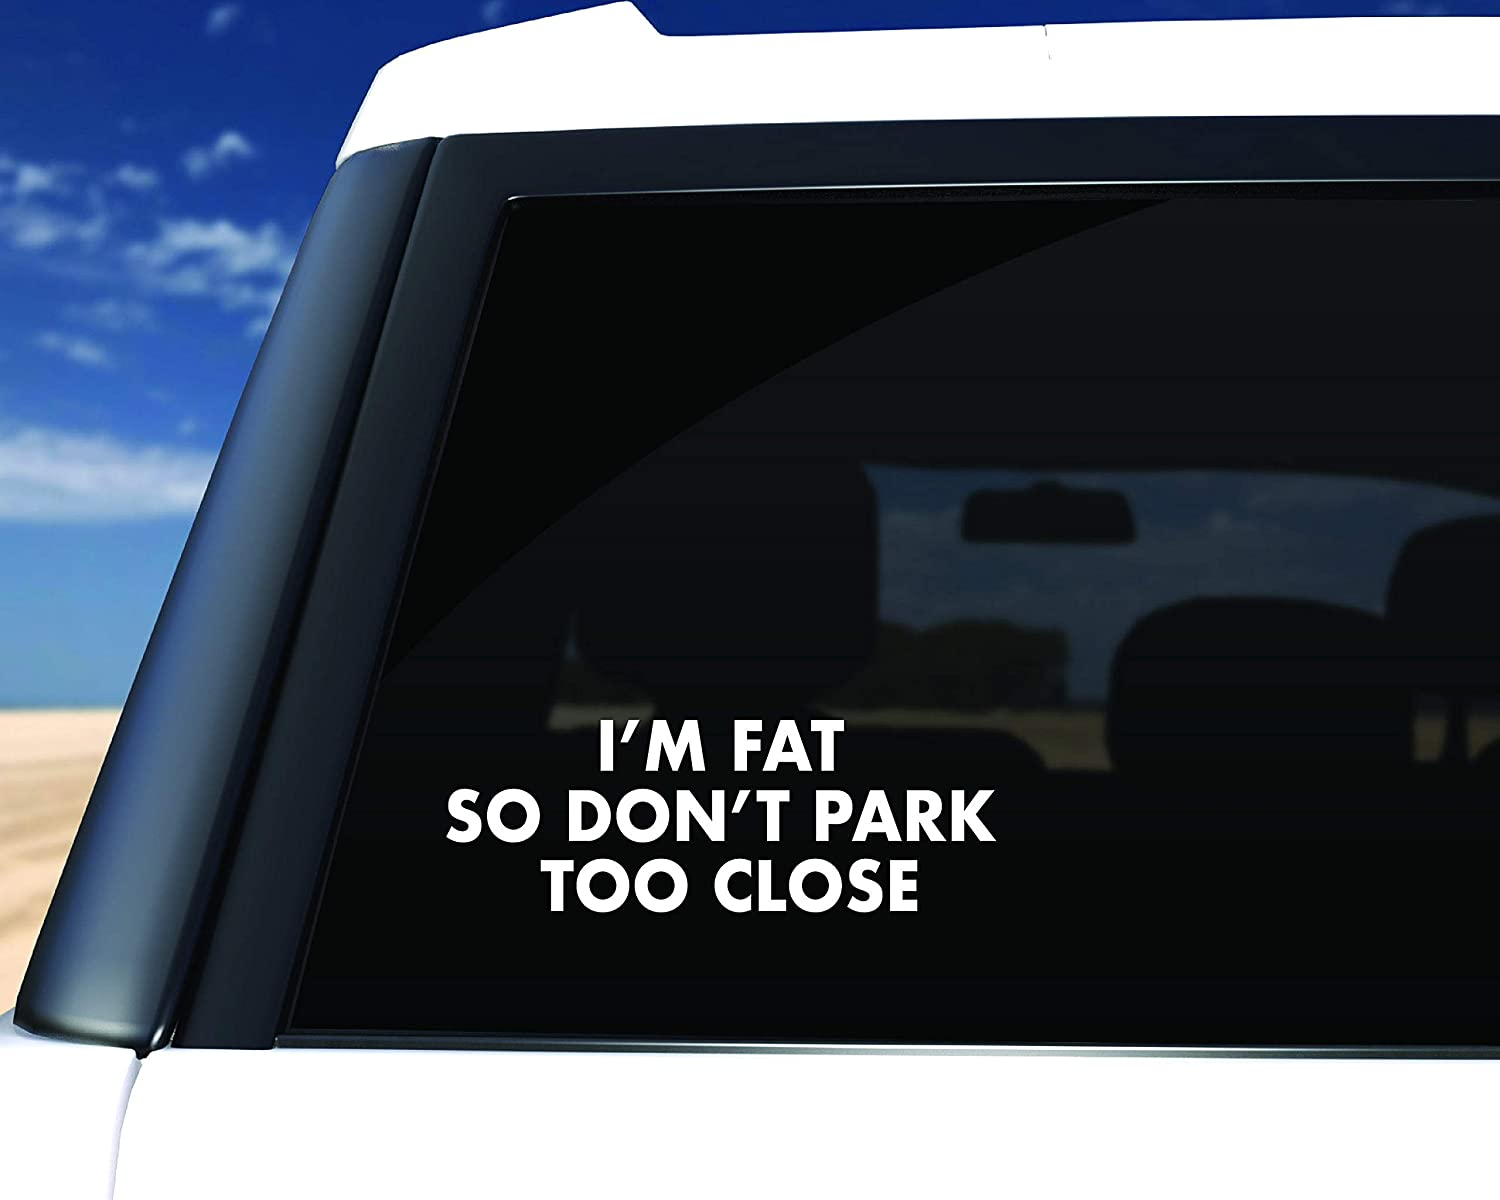 Personalized Car Sticker Im Fat Decal Dont Park Too Close Vinyl Decal Funny Decal Car Decal Truck Decal Im Fat So Dont Park Too Close Decal Cool Decal s Car Decals,Laptop Decal